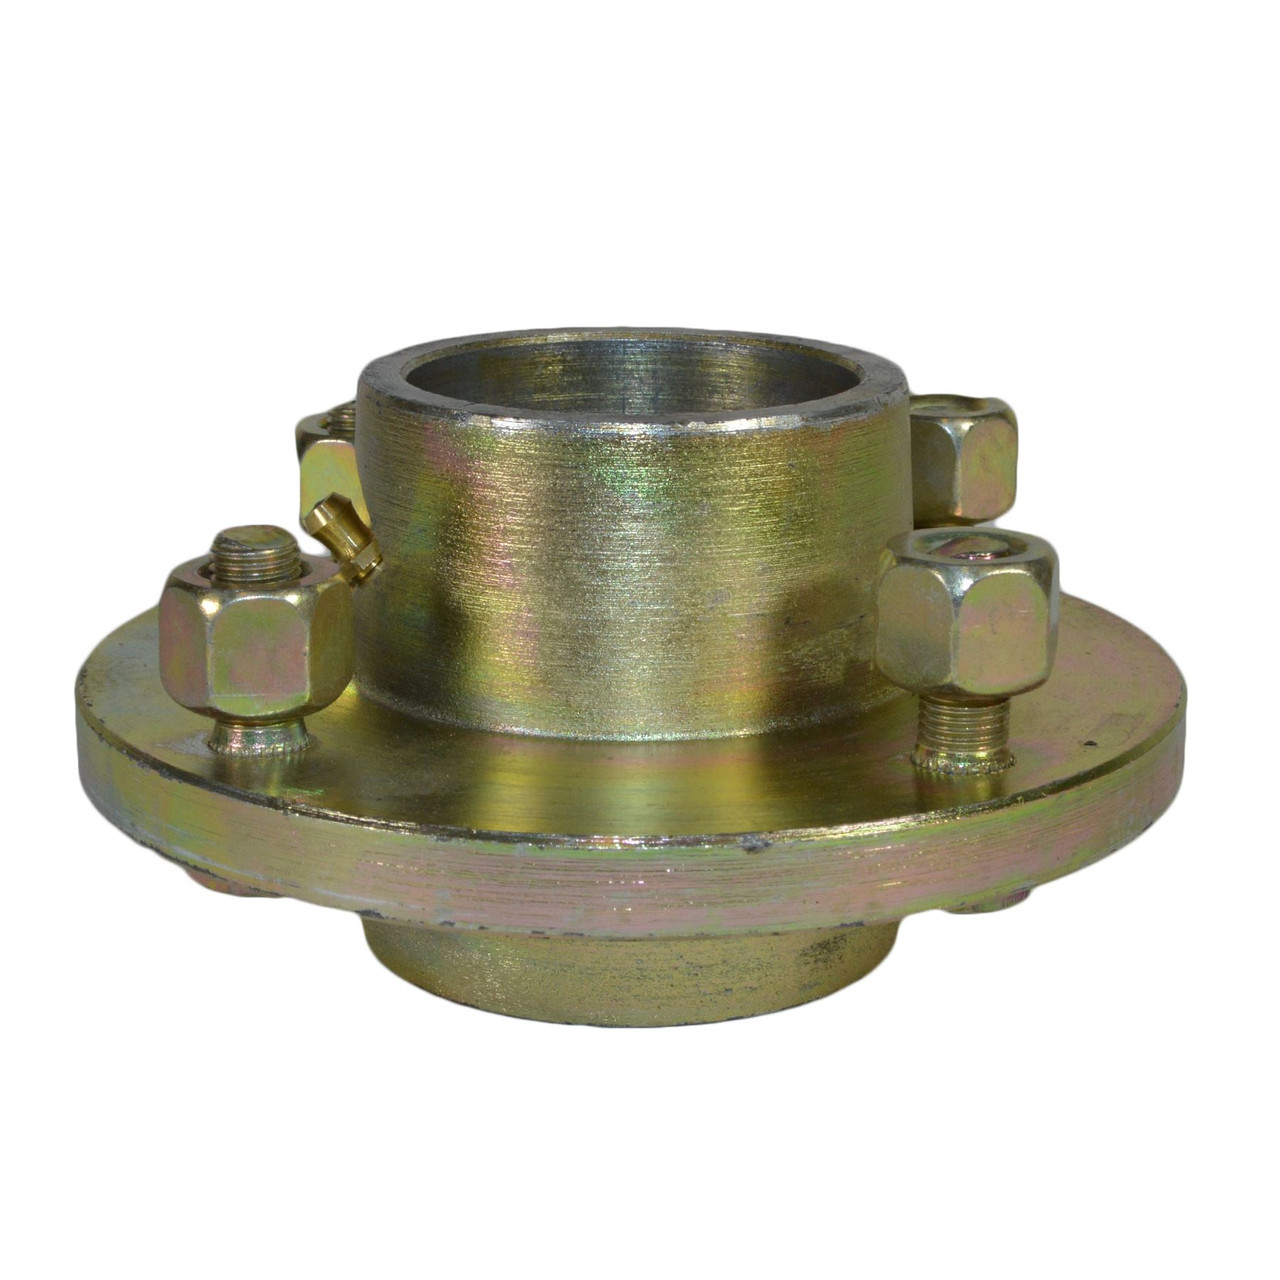 AB Tools Extended Trailer Trolley Stub Axle for 1 Wheel Bearing Hubs with Castle Nut